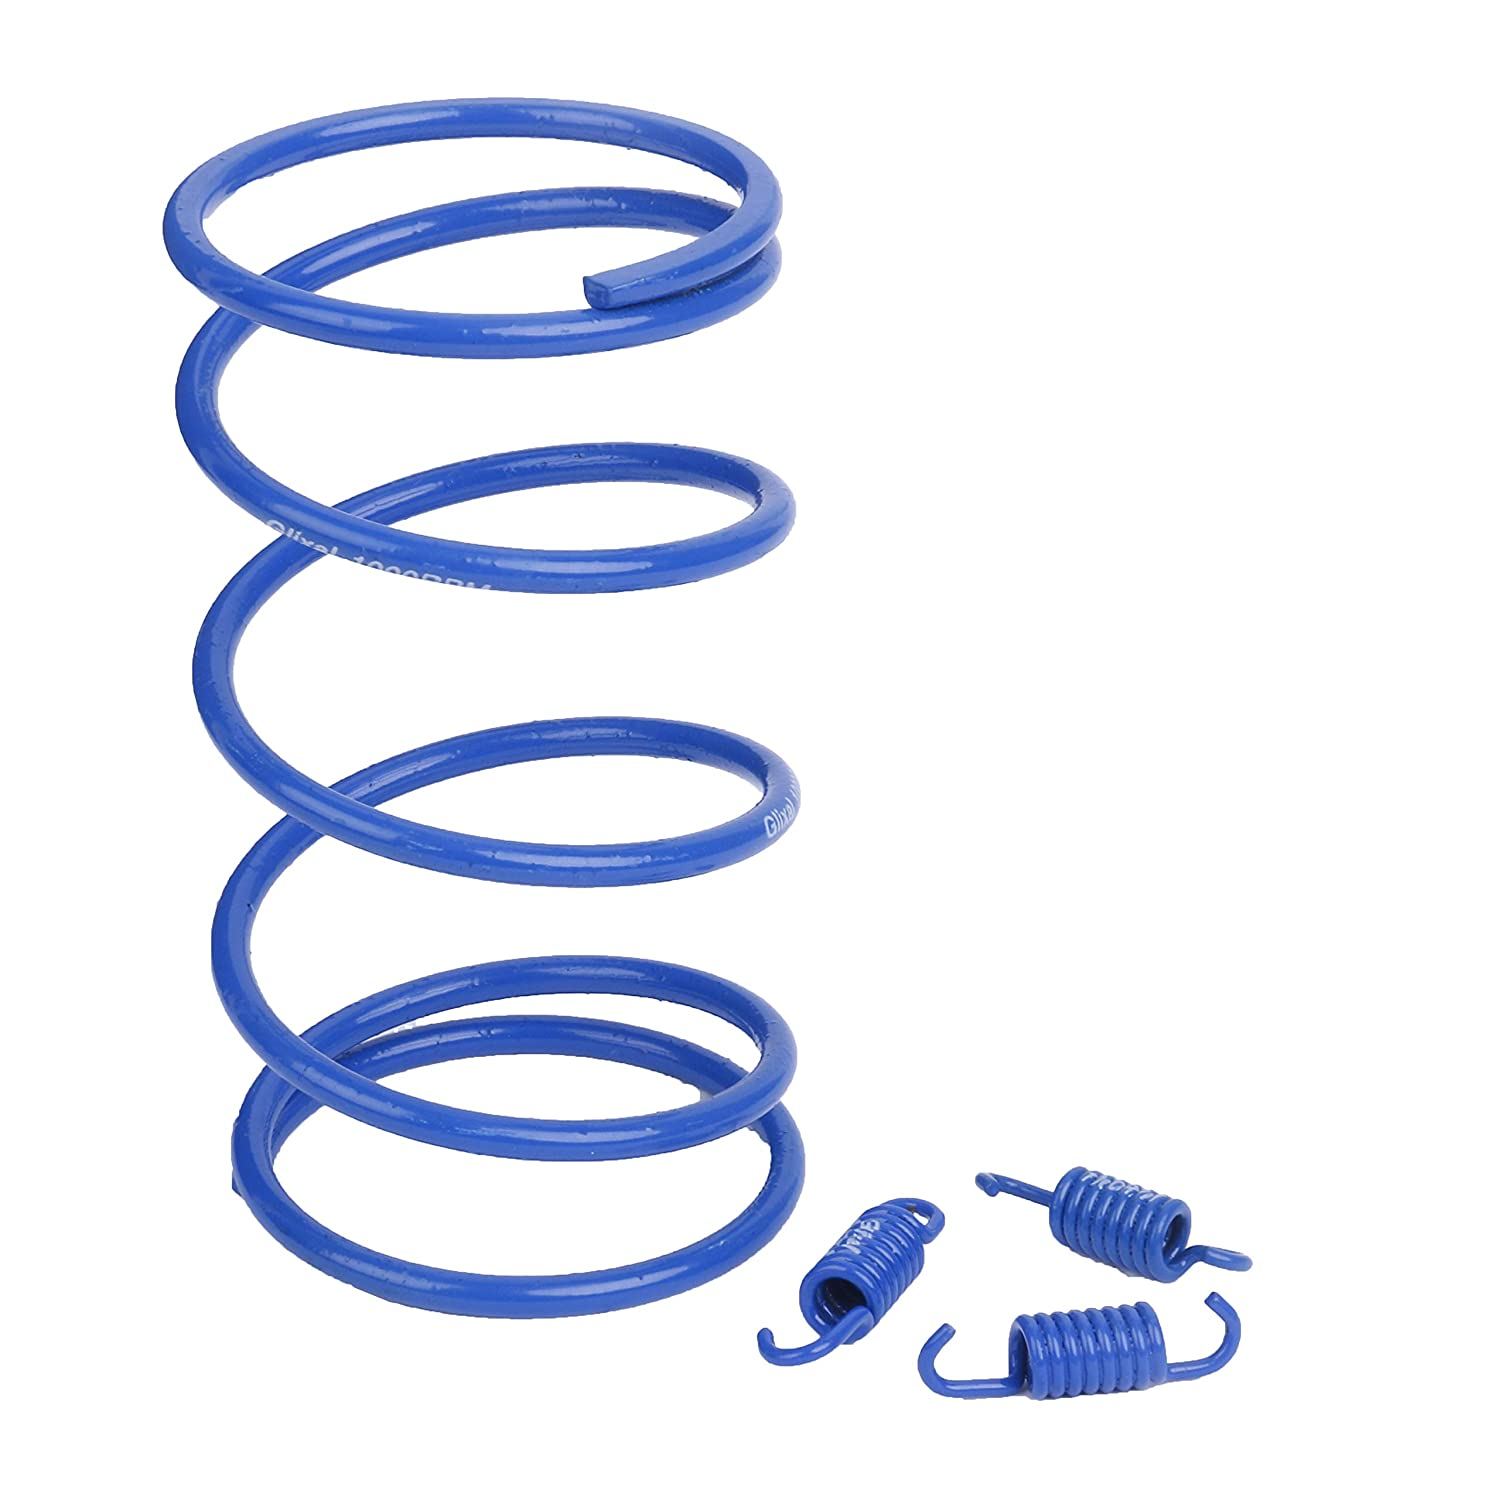 Glixal ATKS-03901 Chinese Scooter High Performance Racing Torque Spring clutch springs GY6 50cc-100cc 139QMB 1P39QMB Engine Moped ATV 1000RPM,Blue